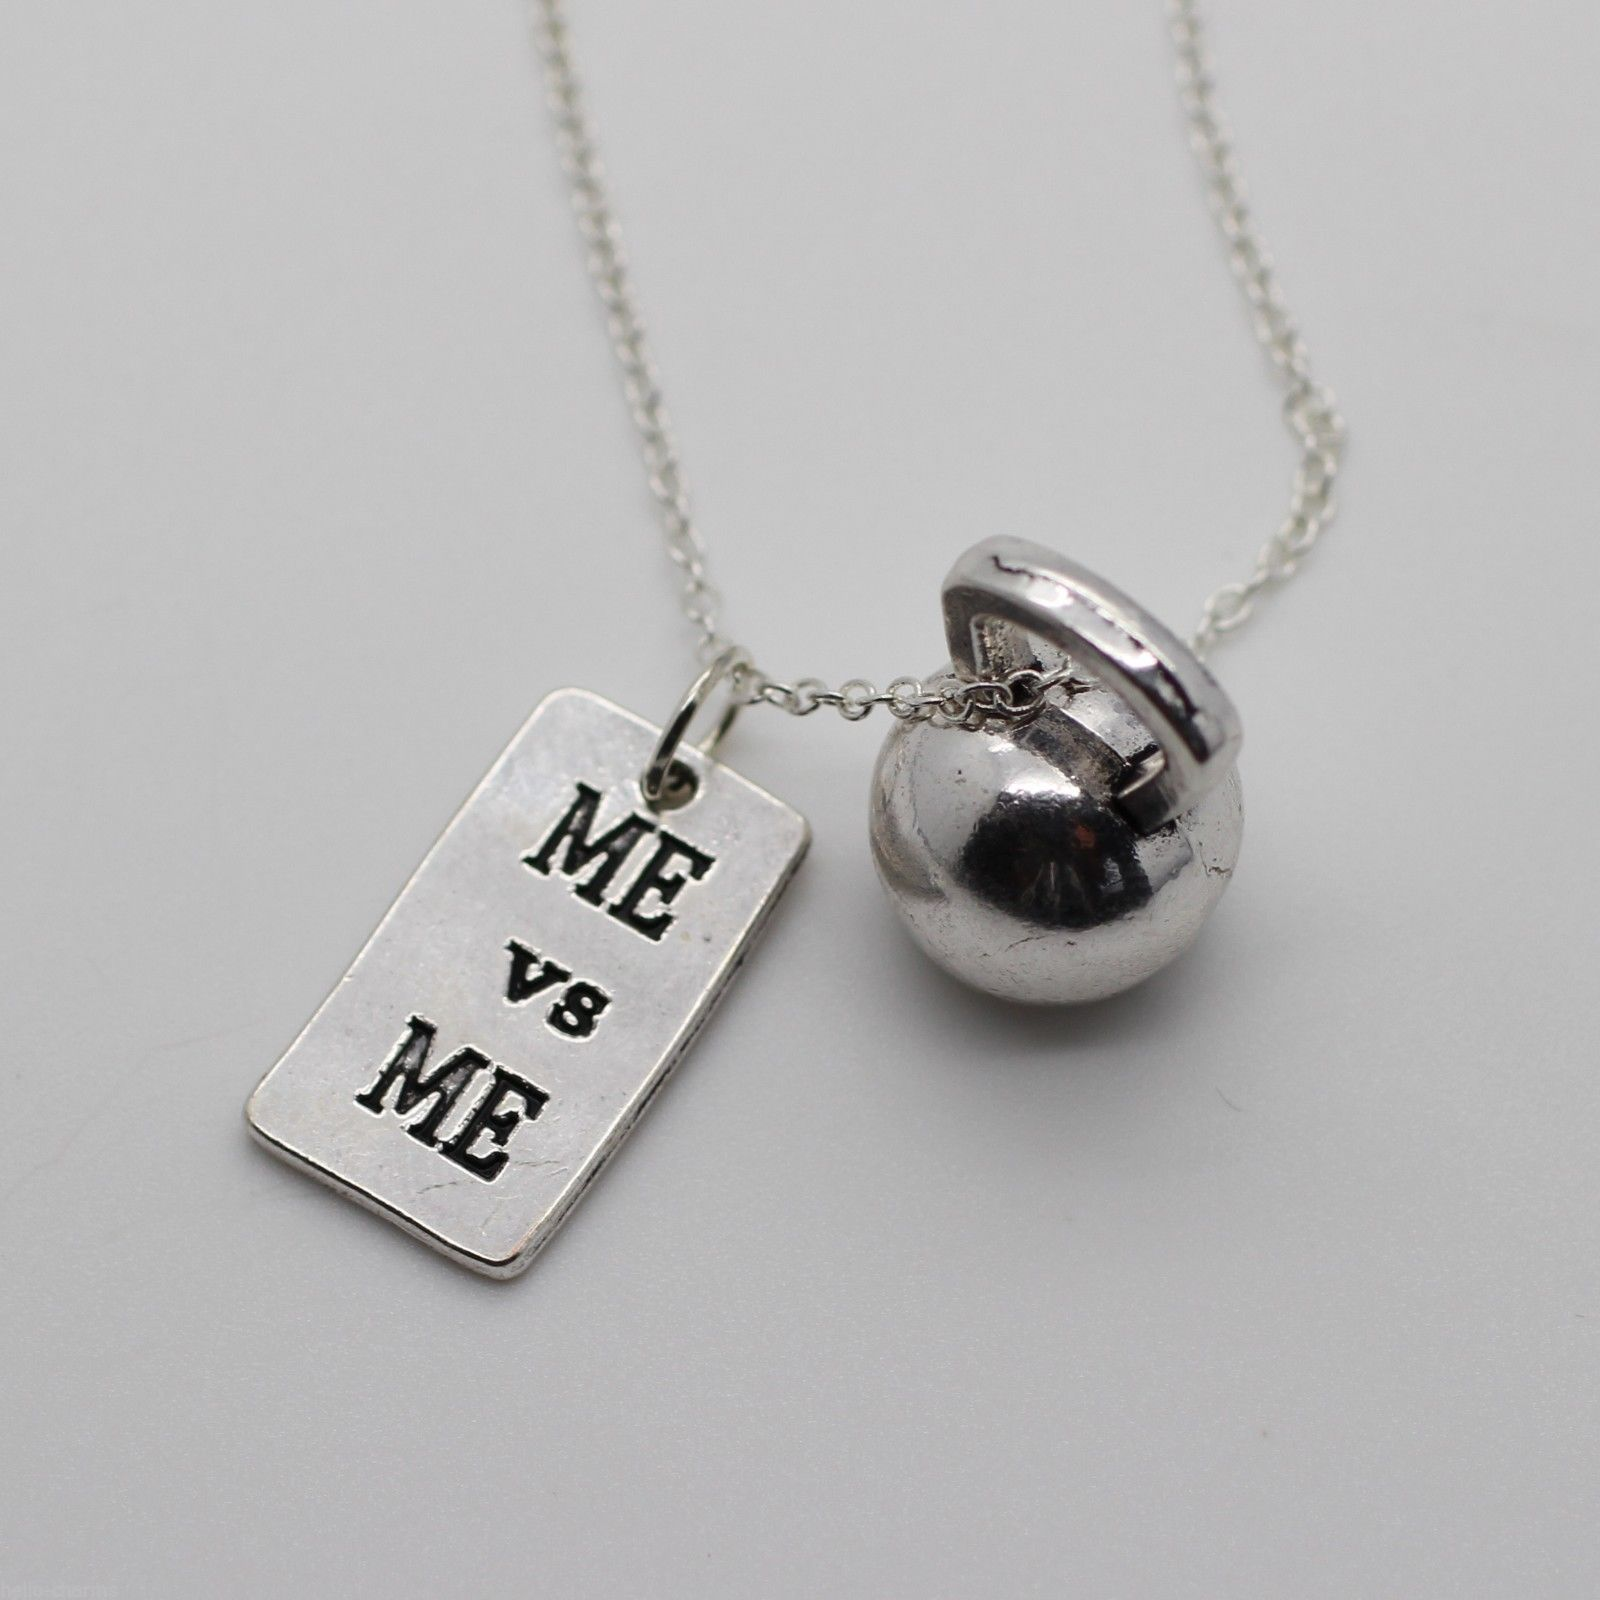 ME & ME & KETTLEBELL NECKLACE Crossfit Jewelry Fitness